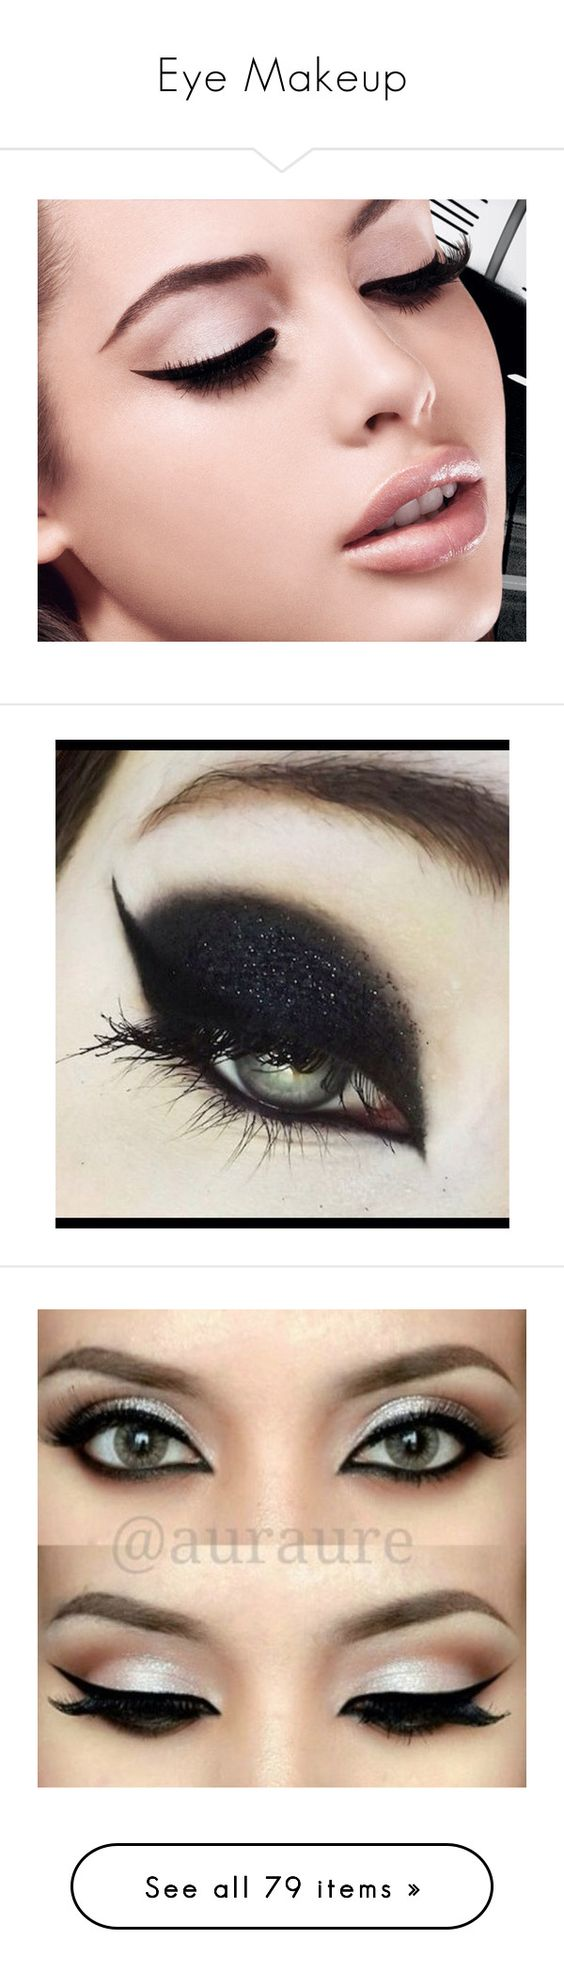 Eye Makeup by rainbright8 on Polyvore featuring polyvore, güzellik, Theia, Paul Mitchell, eyeshadow, beauty products, makeup, eye makeup, eyeliner, beauty, eyes, lips, liquid eye liner, liquid eyeliner, maybelline eye liner, liquid eye-liner, maybelline eyeliner, maquiagem, make, nails, makeup eyes, lip makeup, rainbow, arco, gryffindor, photos, backgrounds, filler, frozen, disney, pictures, mineral eyeshadow, mineral eye makeup, mineral eye shadow, eye shadow, bath & beauty, grey, makeup…